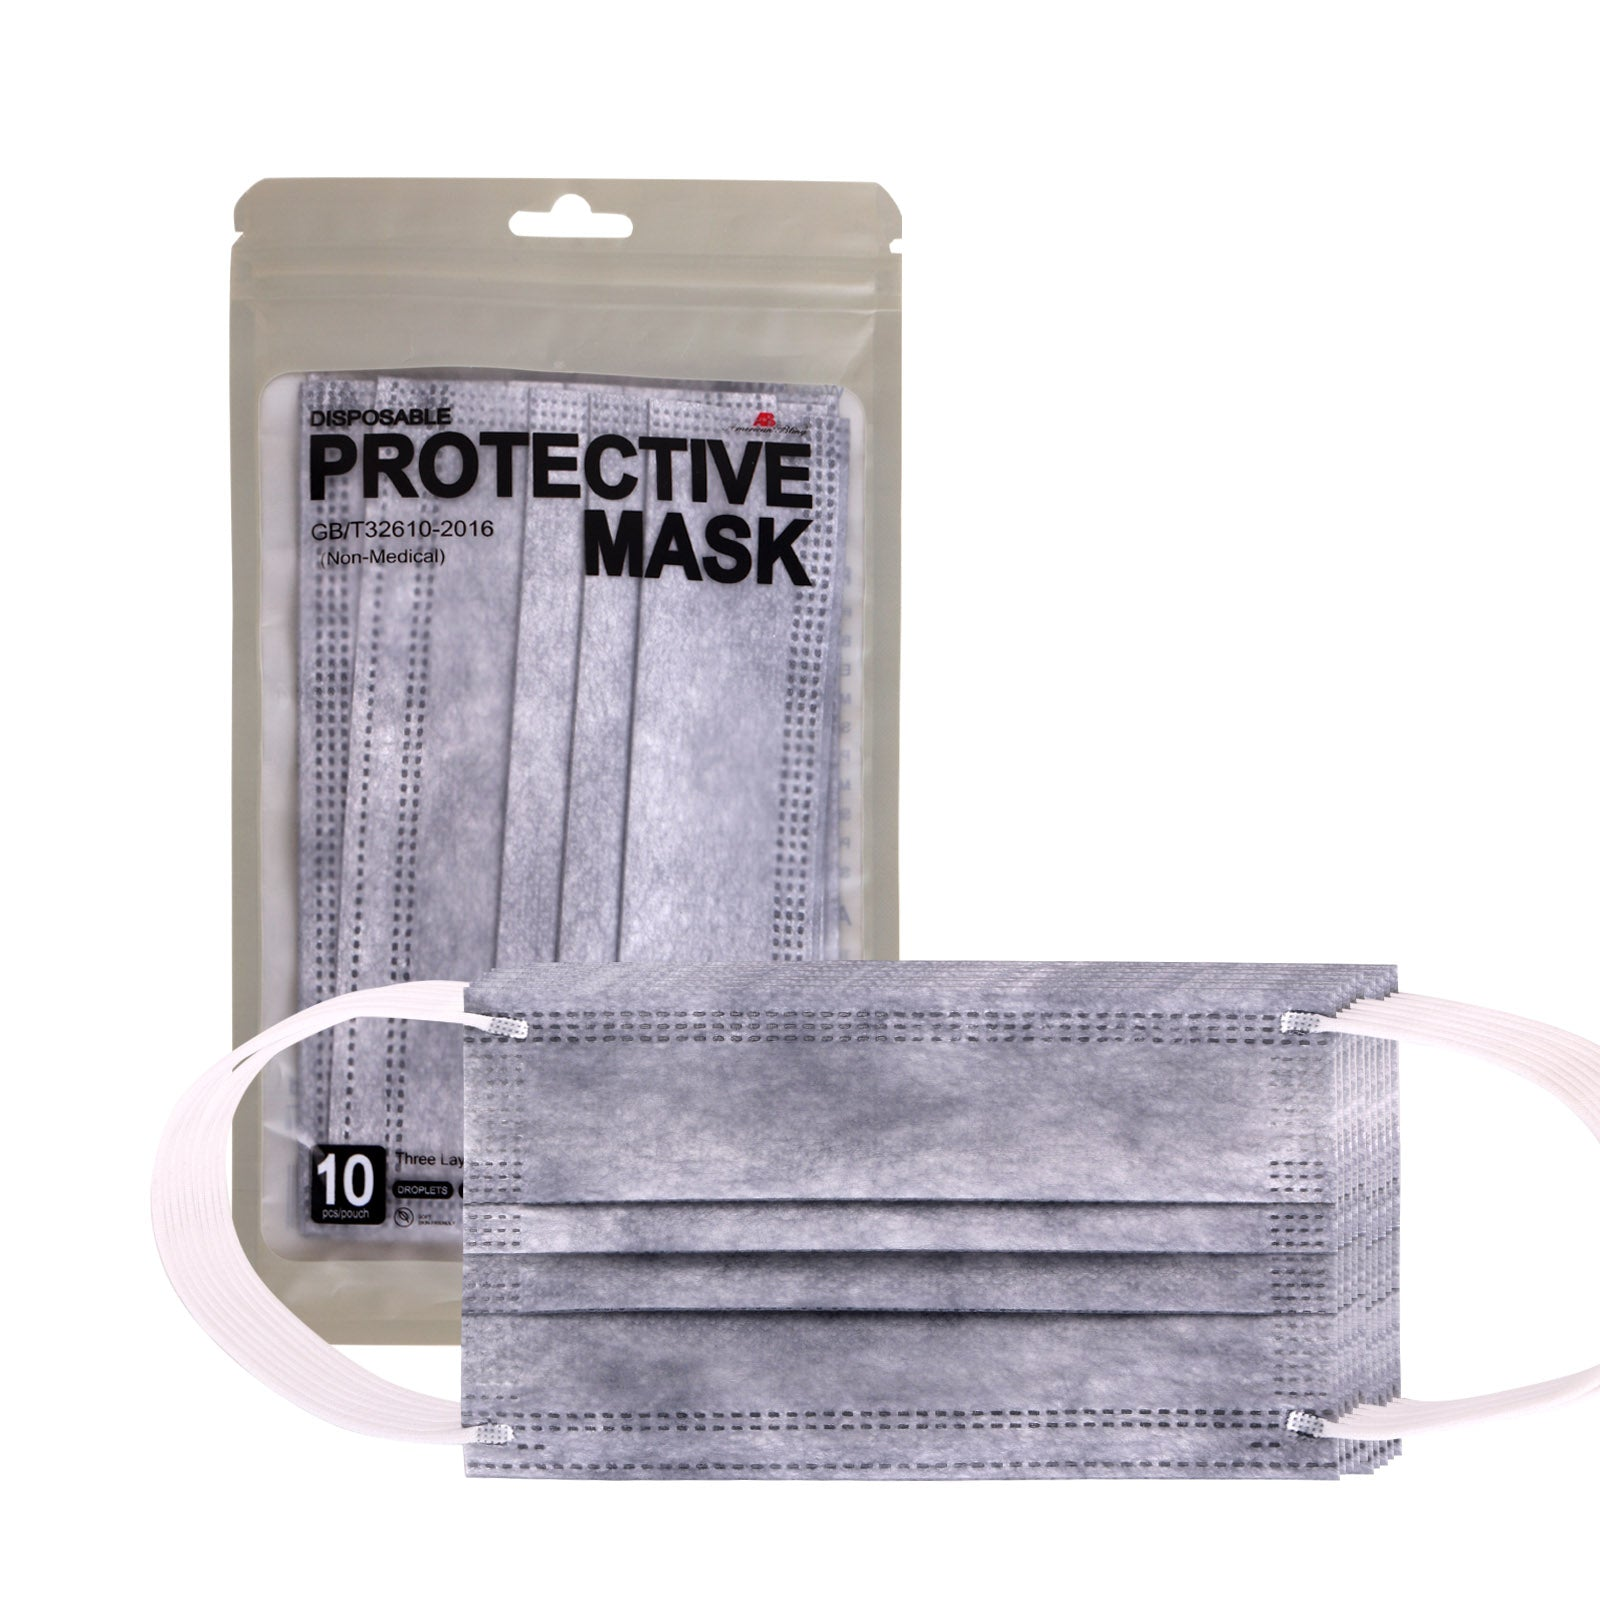 ABFM-GY10   10 PCS Grey Disposable Face Masks 3 Layers  Protective Cover Masks (Non-Medical)